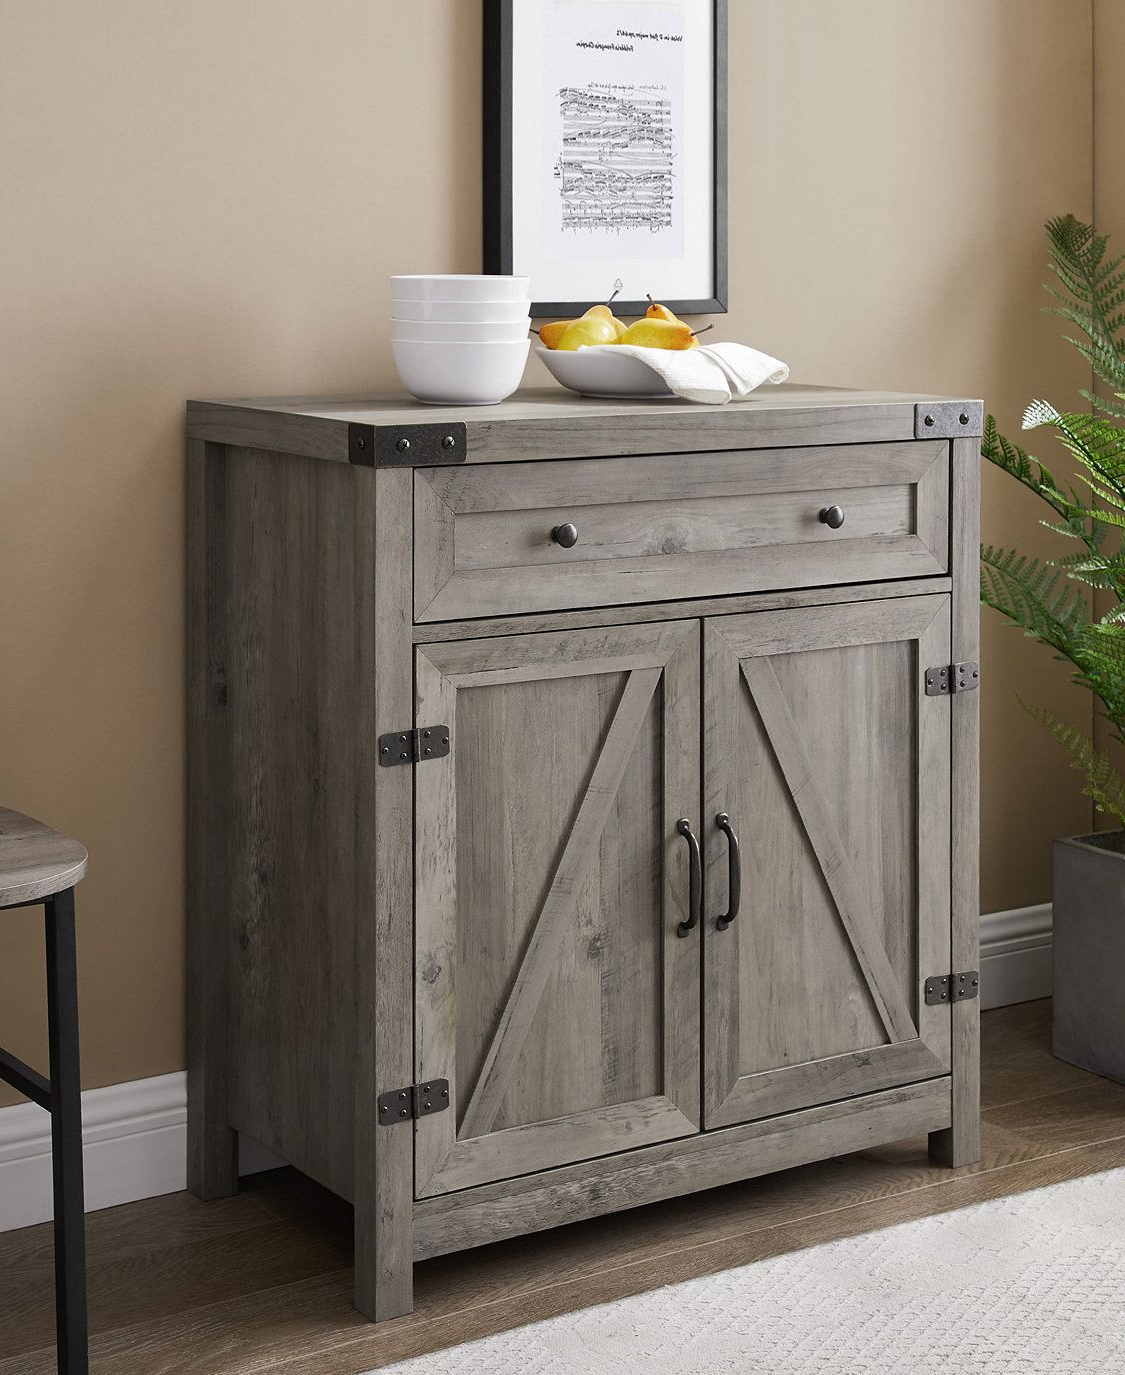 Manor Park Farmhouse Barn Door Accent Cabinet Reclaimed Inside Woven Paths Open Storage Tv Stands With Multiple Finishes (View 15 of 20)